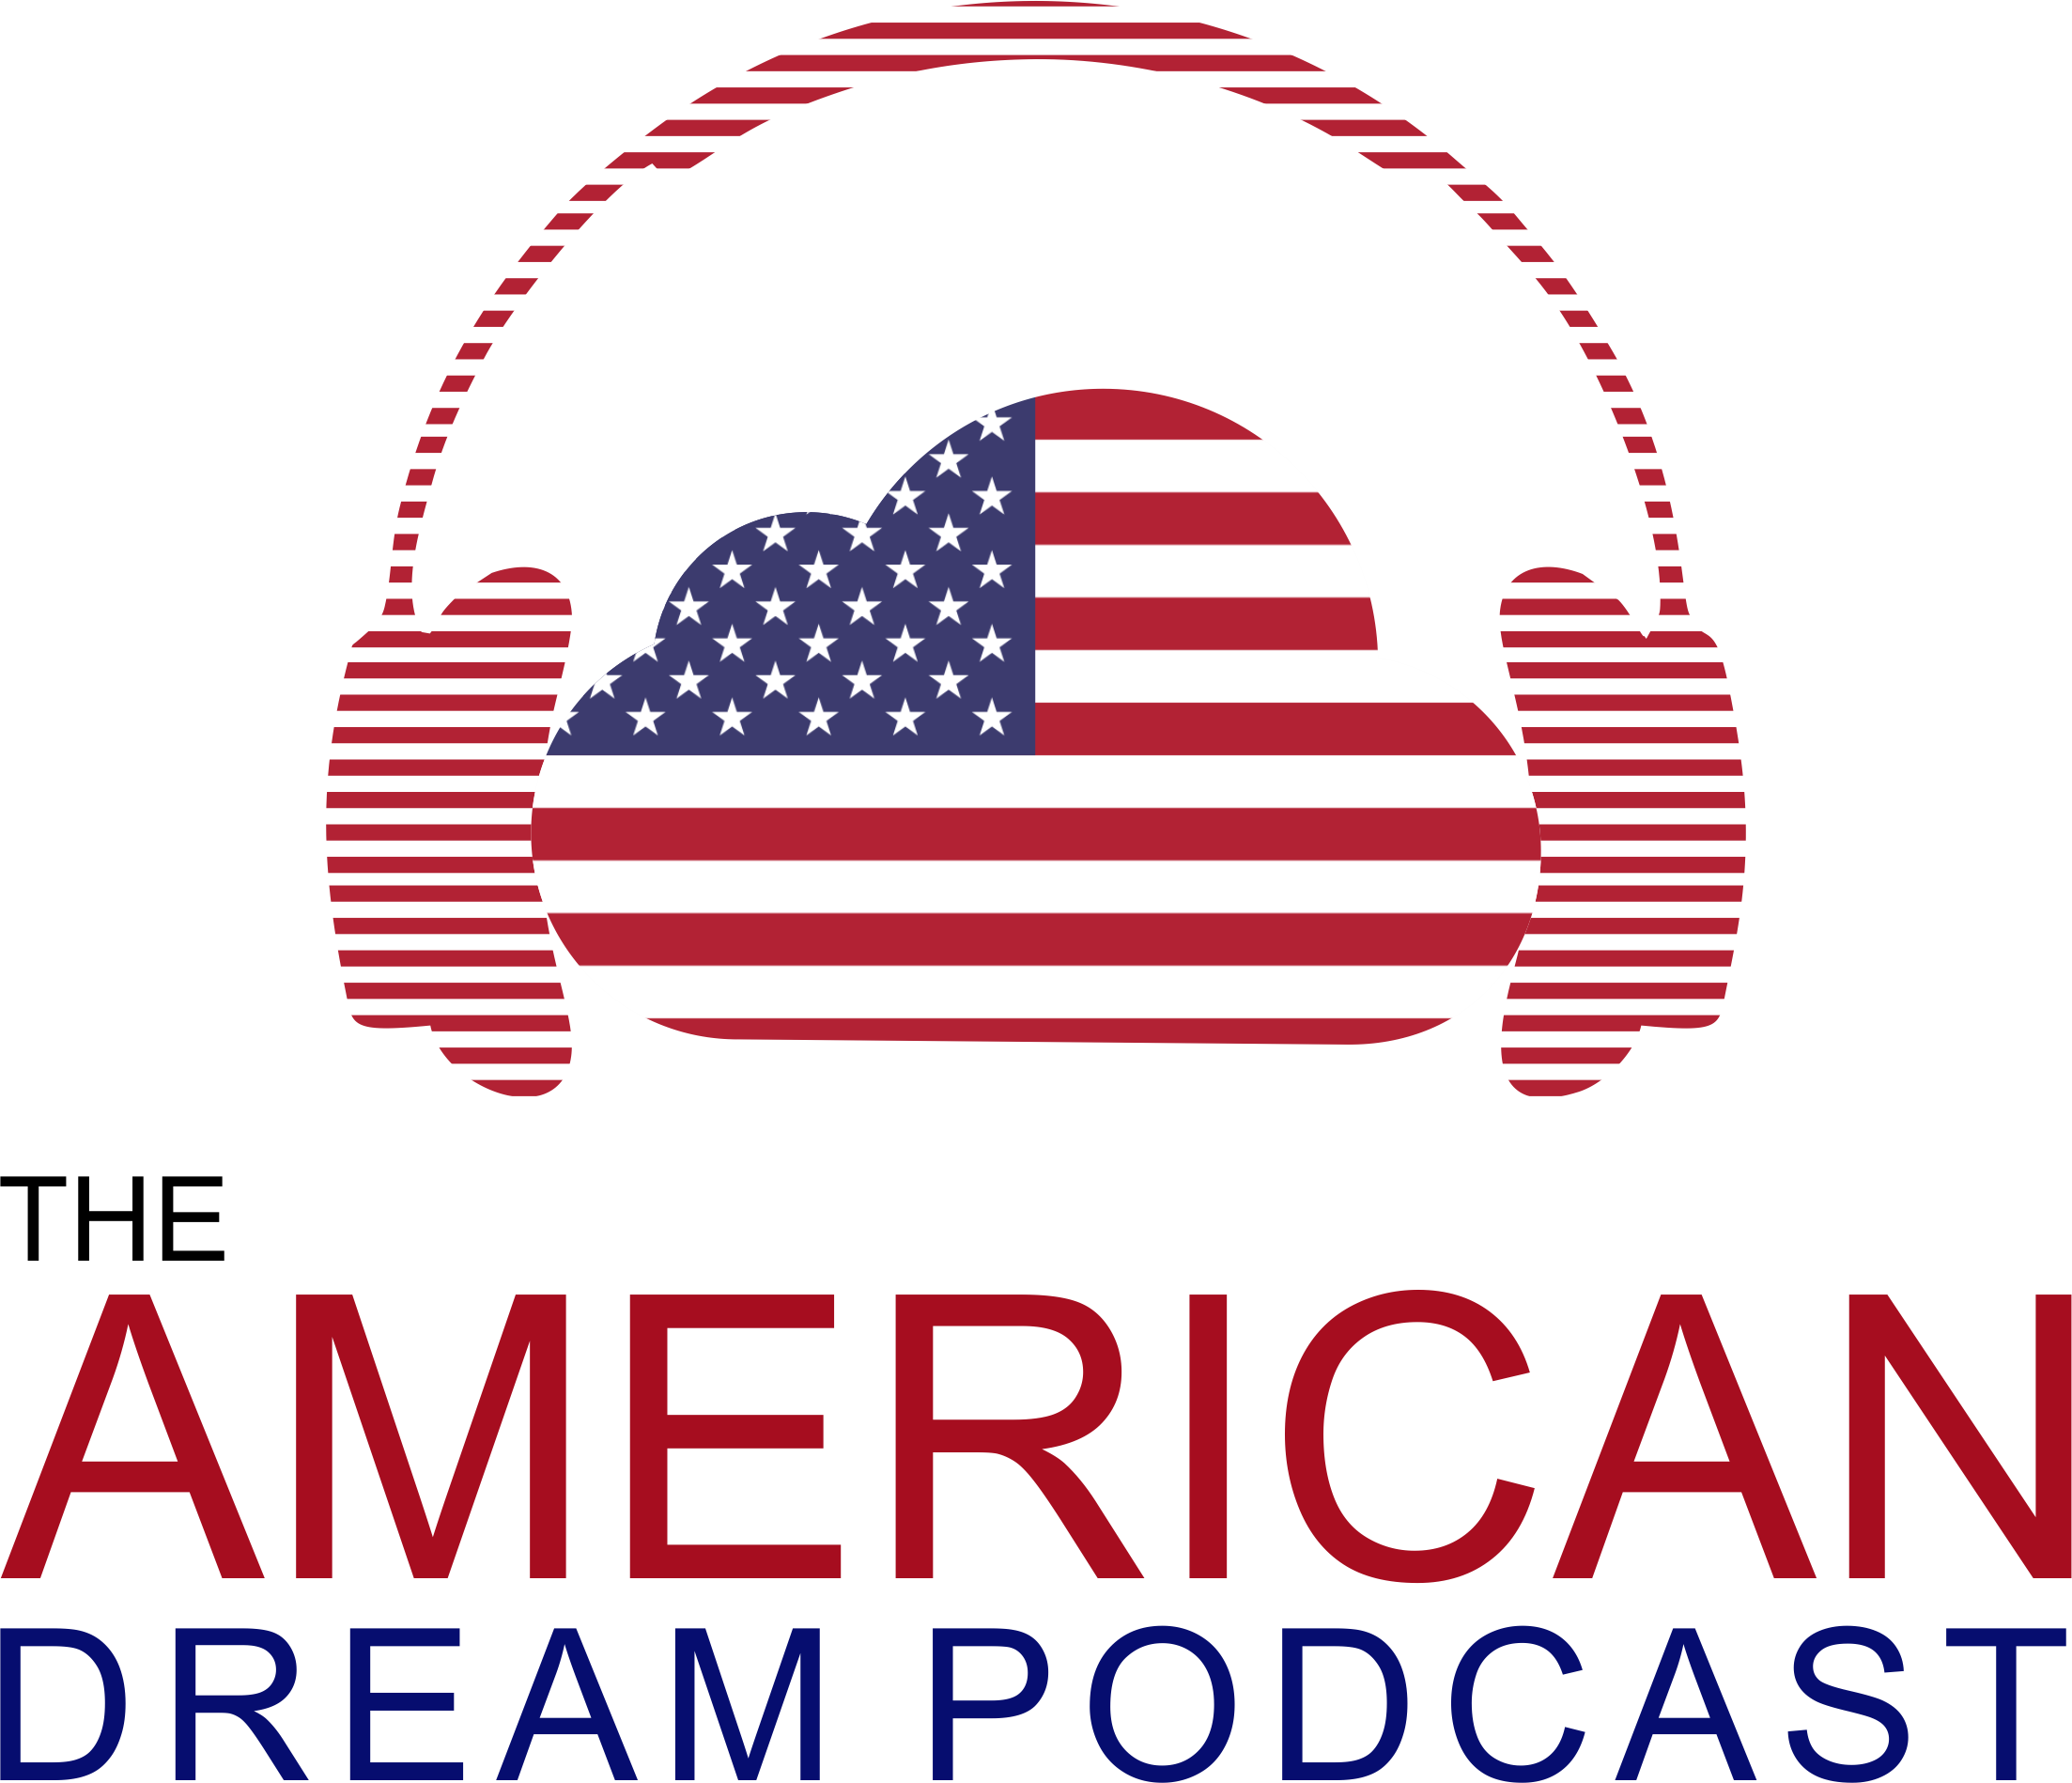 American Dream Podcast - #4 Steve Rozenberg Empire Industries